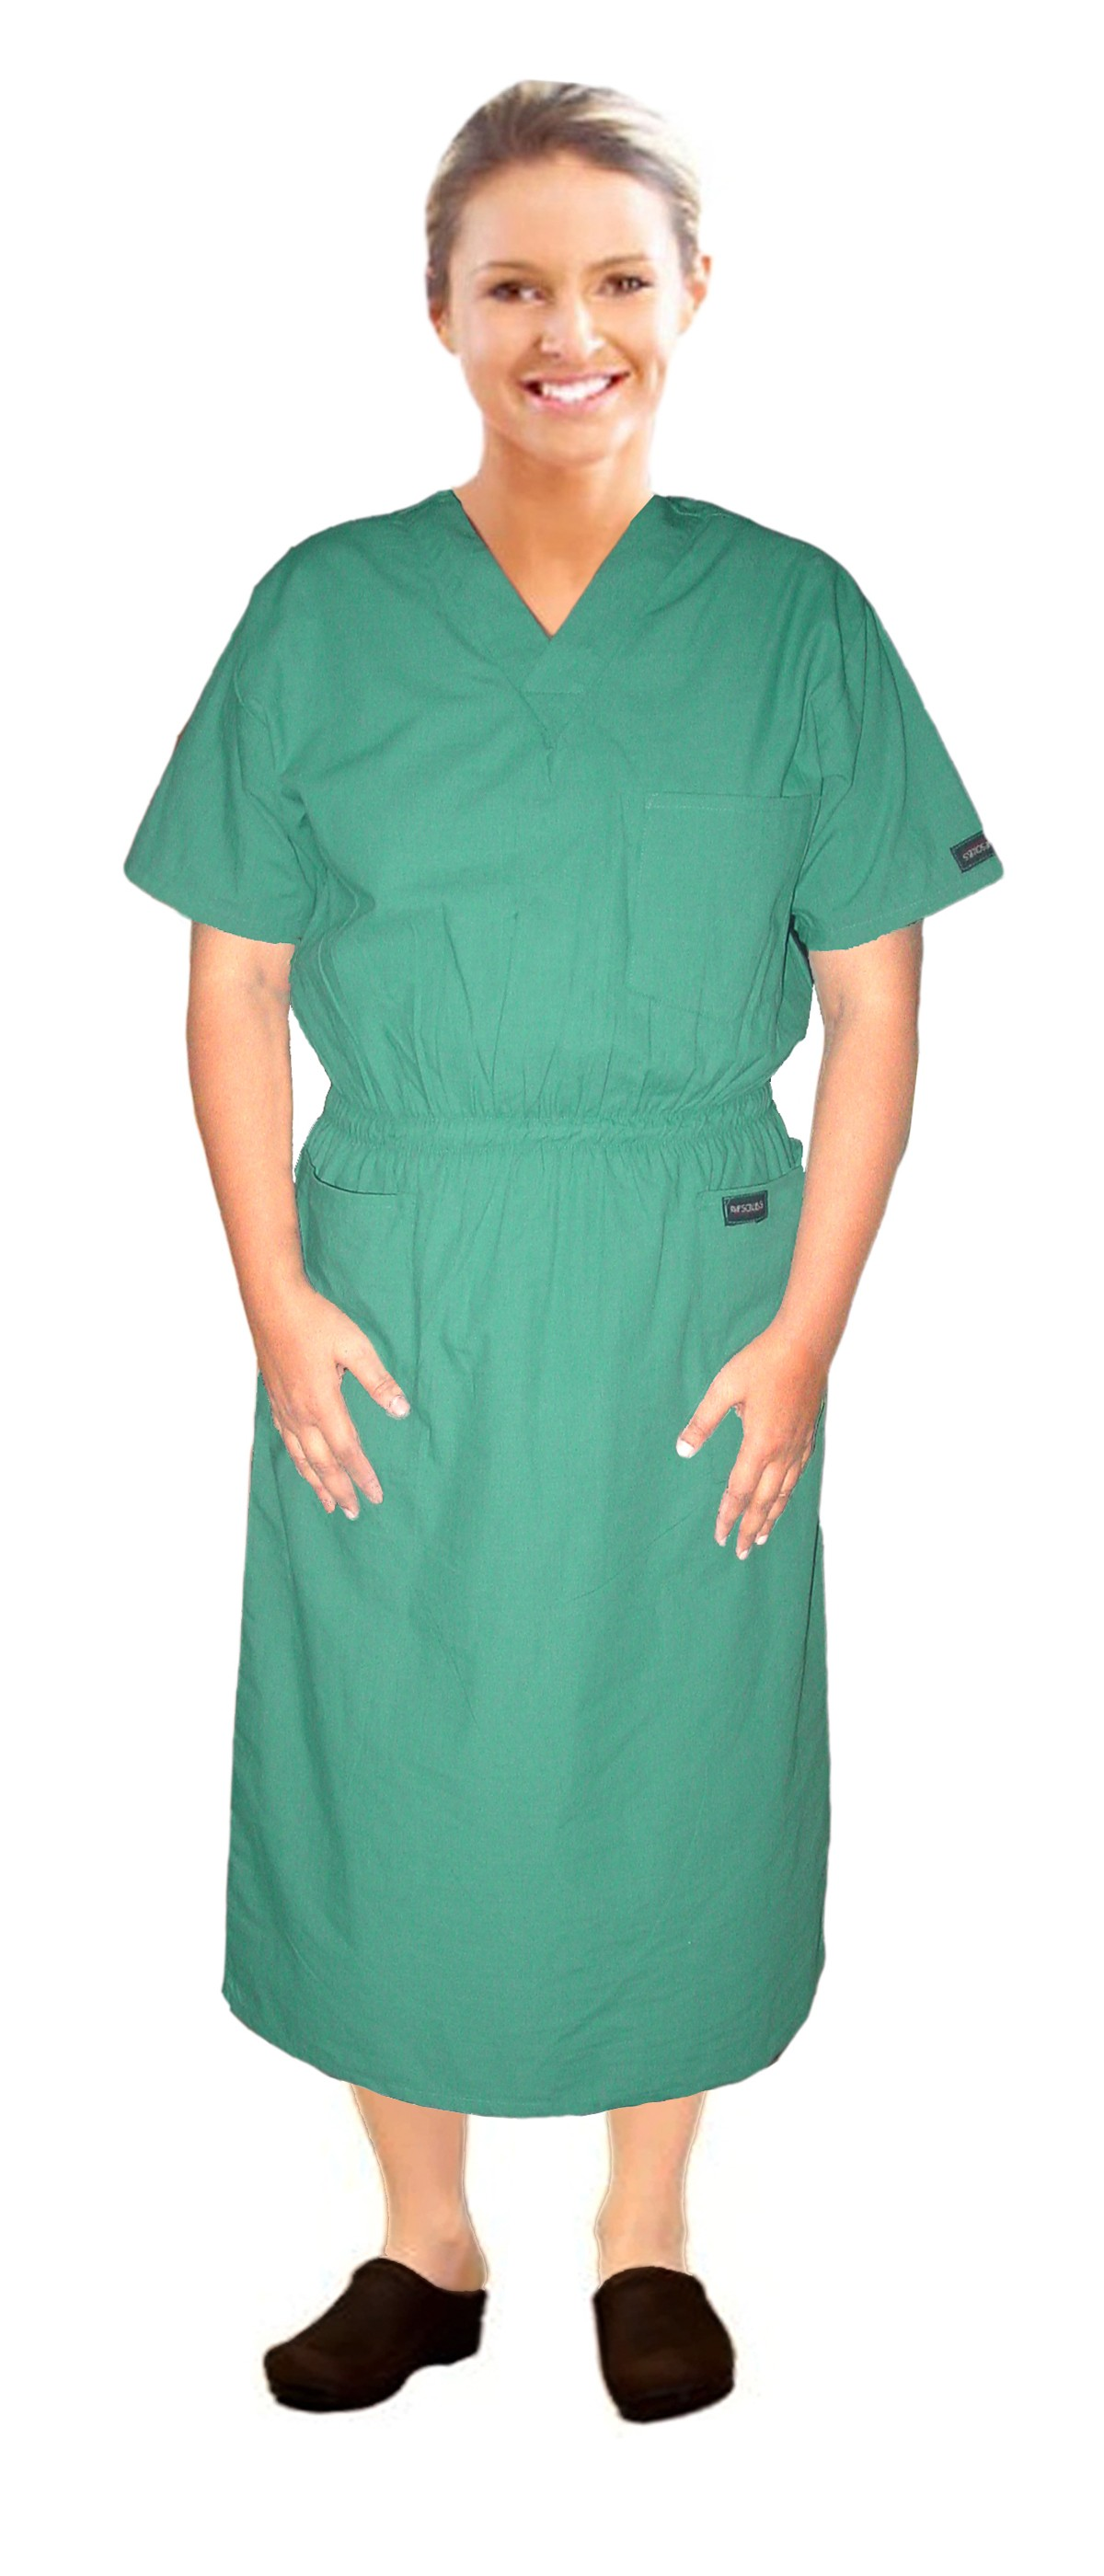 MICROFIBER NURSING DRESS HALF SLEEVE ELASTIC WAIST V NECK